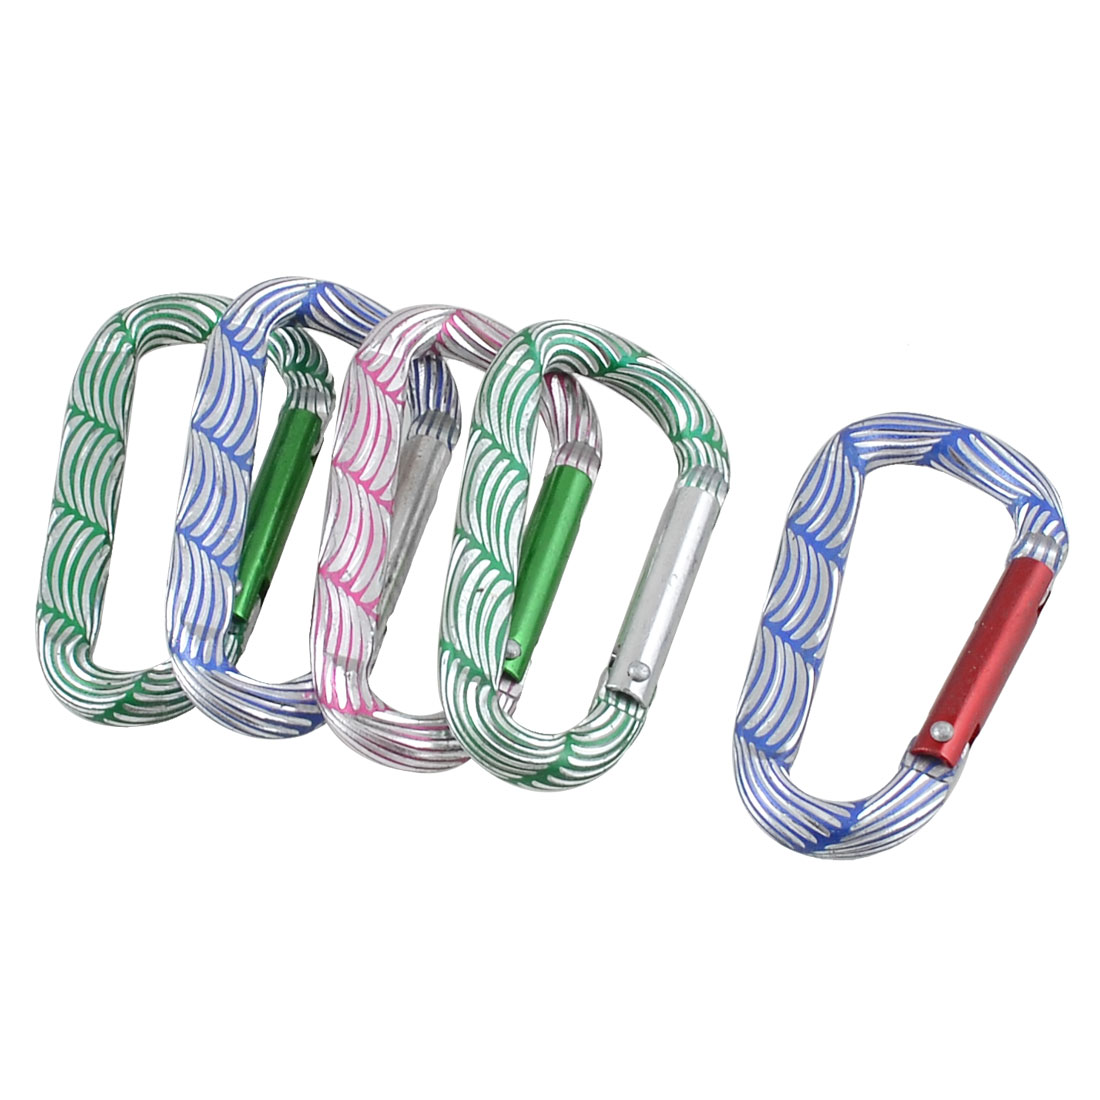 Colorful Stripded D Shaped Aluminum Alloy Locking Carabiner 5 Pcs